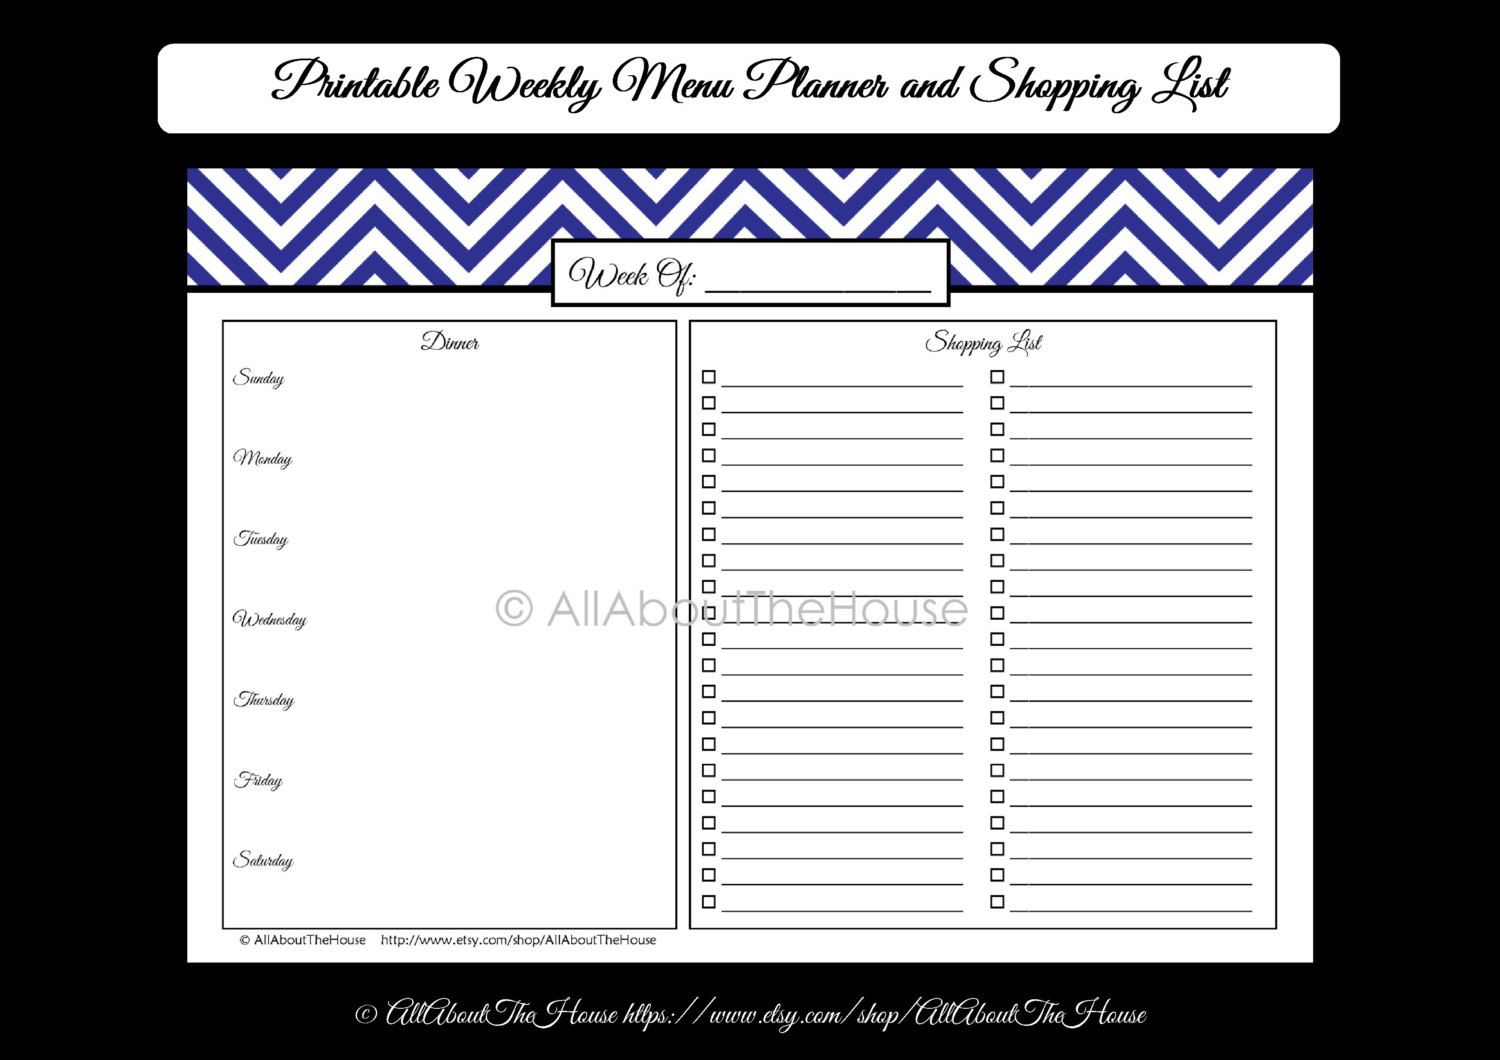 Printable Weekly Meal Planner And Shopping List